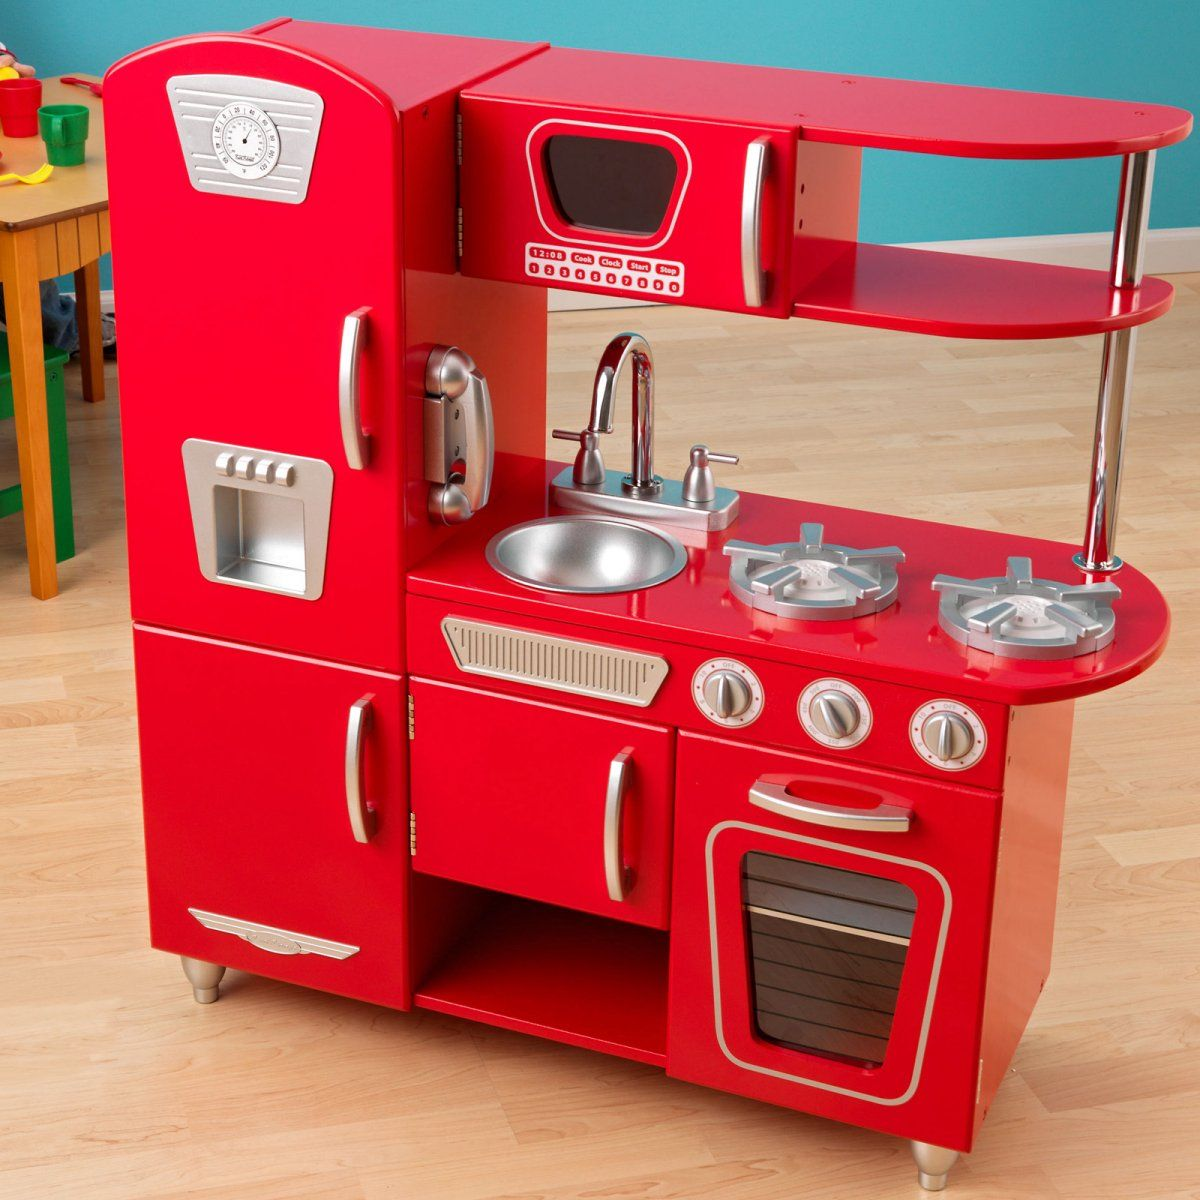 Kidkraft vintage play kitchen ni os pinterest juguetes for Cocina juguete imaginarium